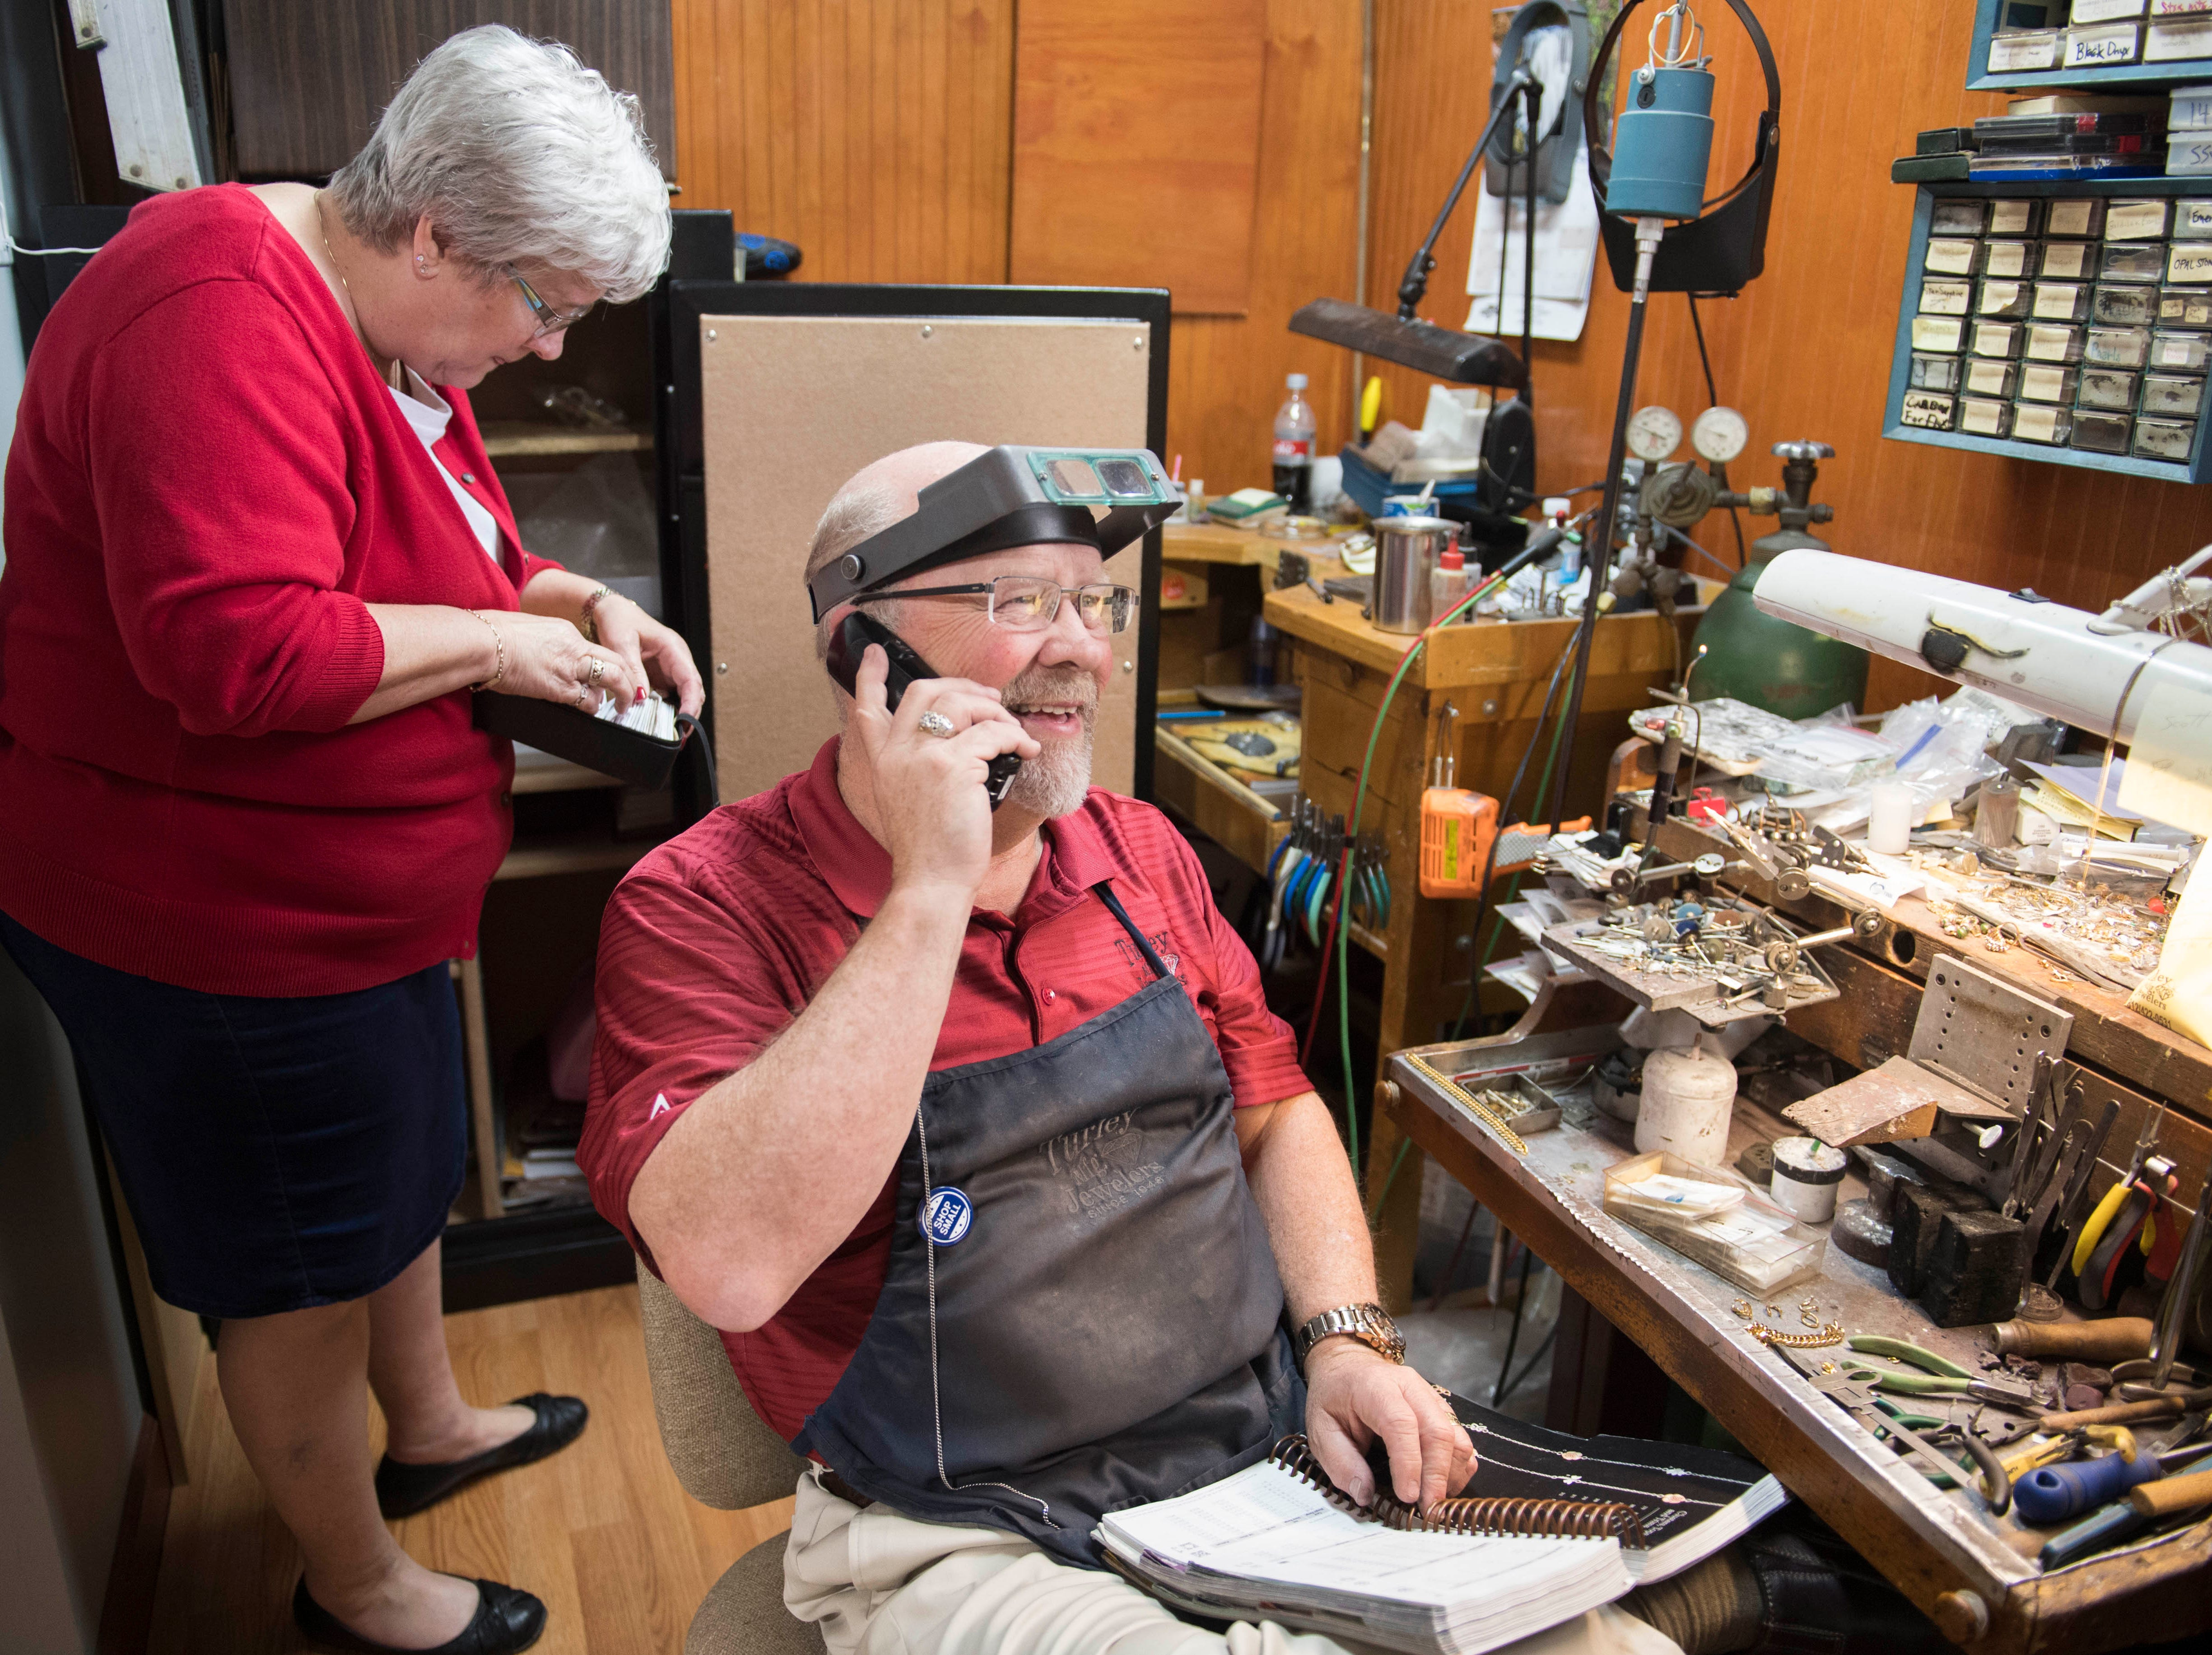 Joan Turley, left, looks for diamonds from the safe, while Bryan Turley, takes a phone call Wednesday, April 10, 2019. Turley Mfg. Jewelers is a third generation family own jewelry store in its 71st year in Downtown Evansville, Indiana.